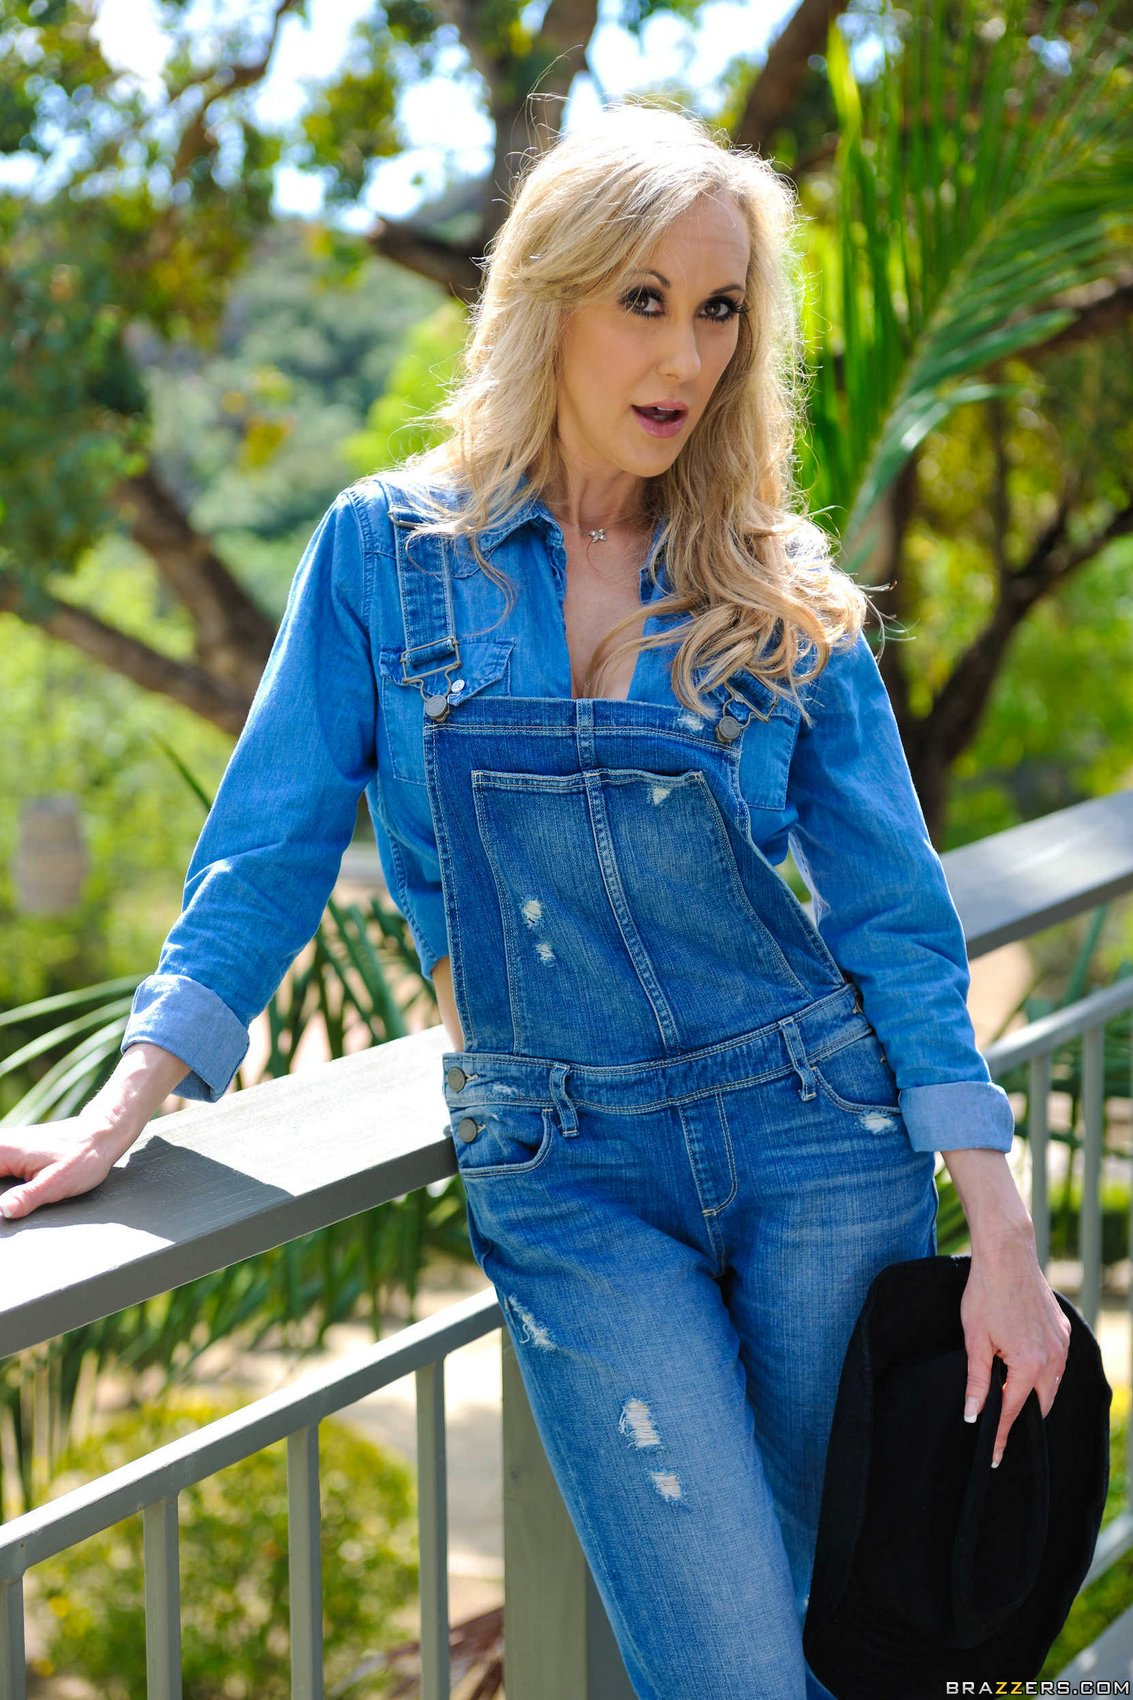 Brandi Love In Sexy Jeans And Boots Stripping Outdoor - My -9448